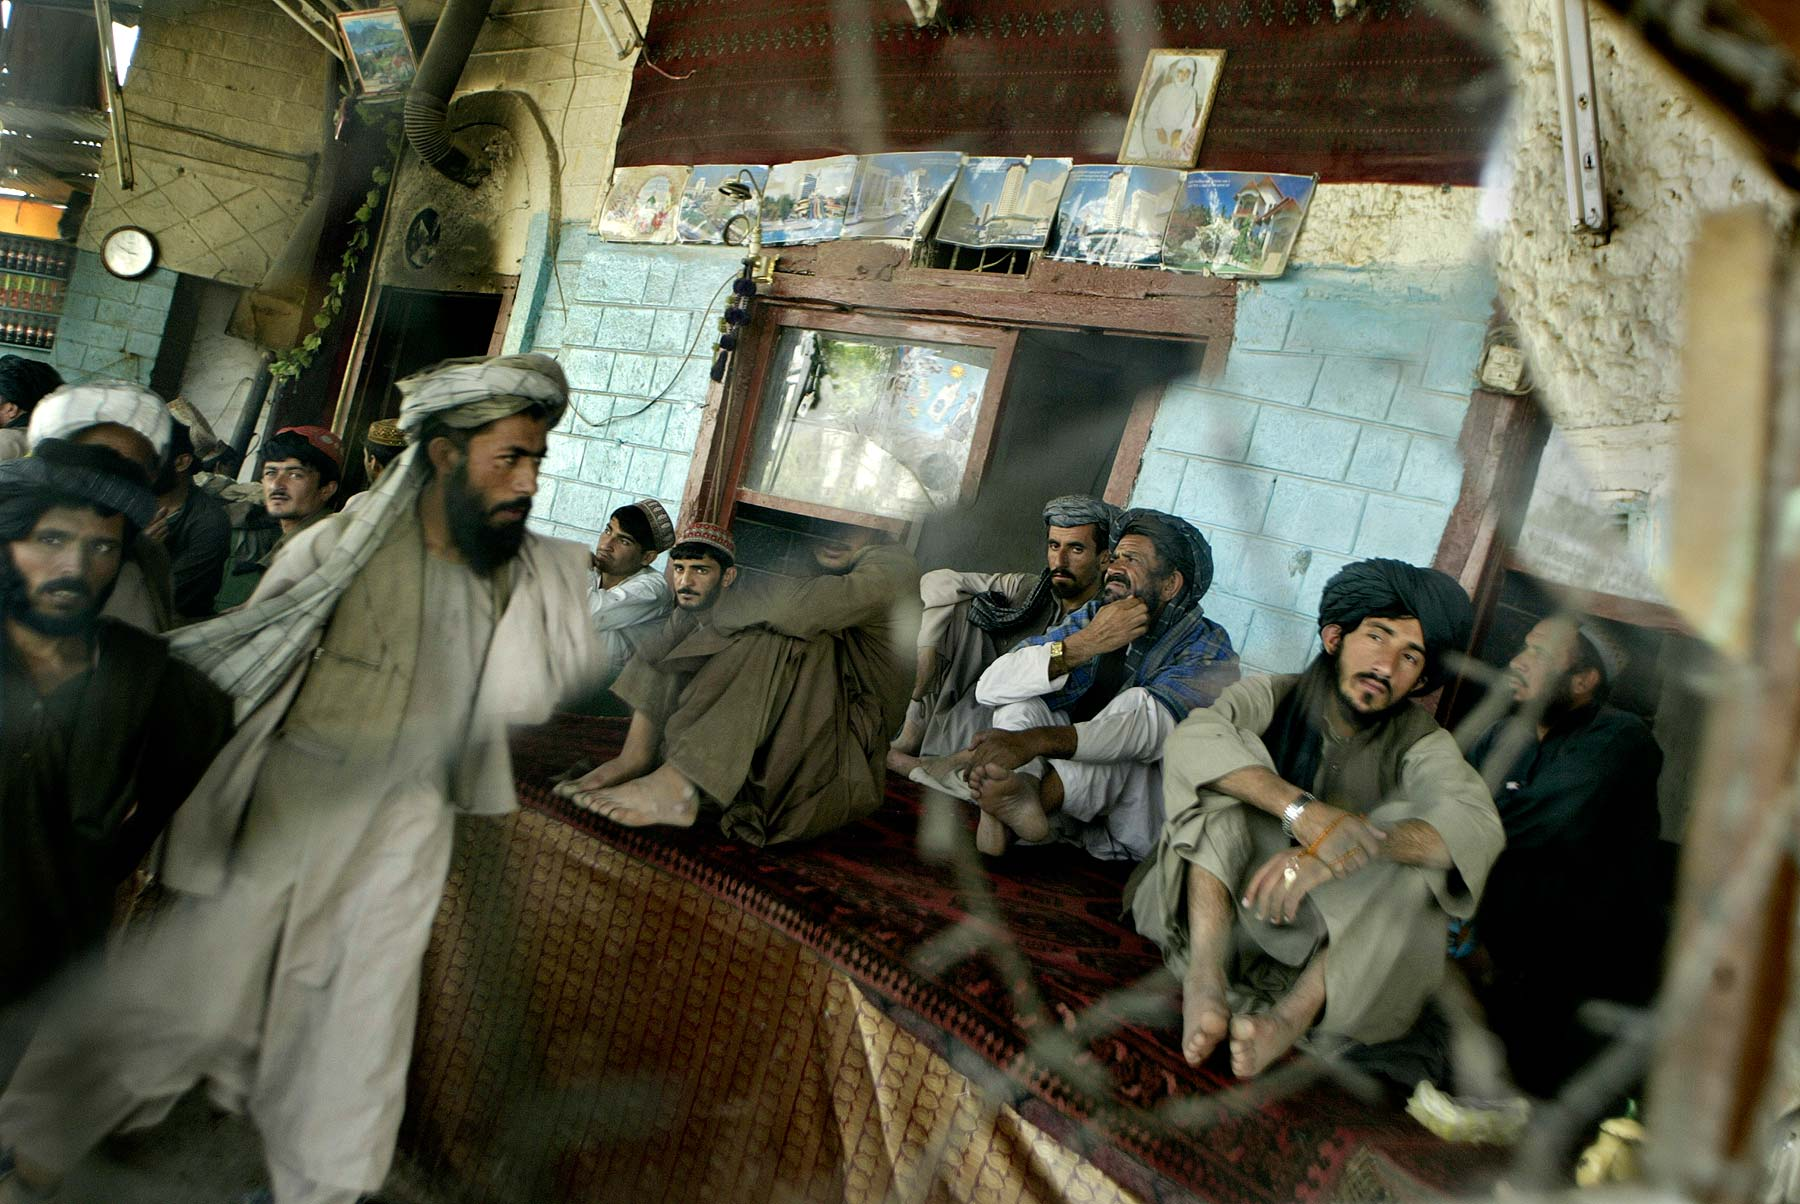 Afghan Men Teashop Kandahar